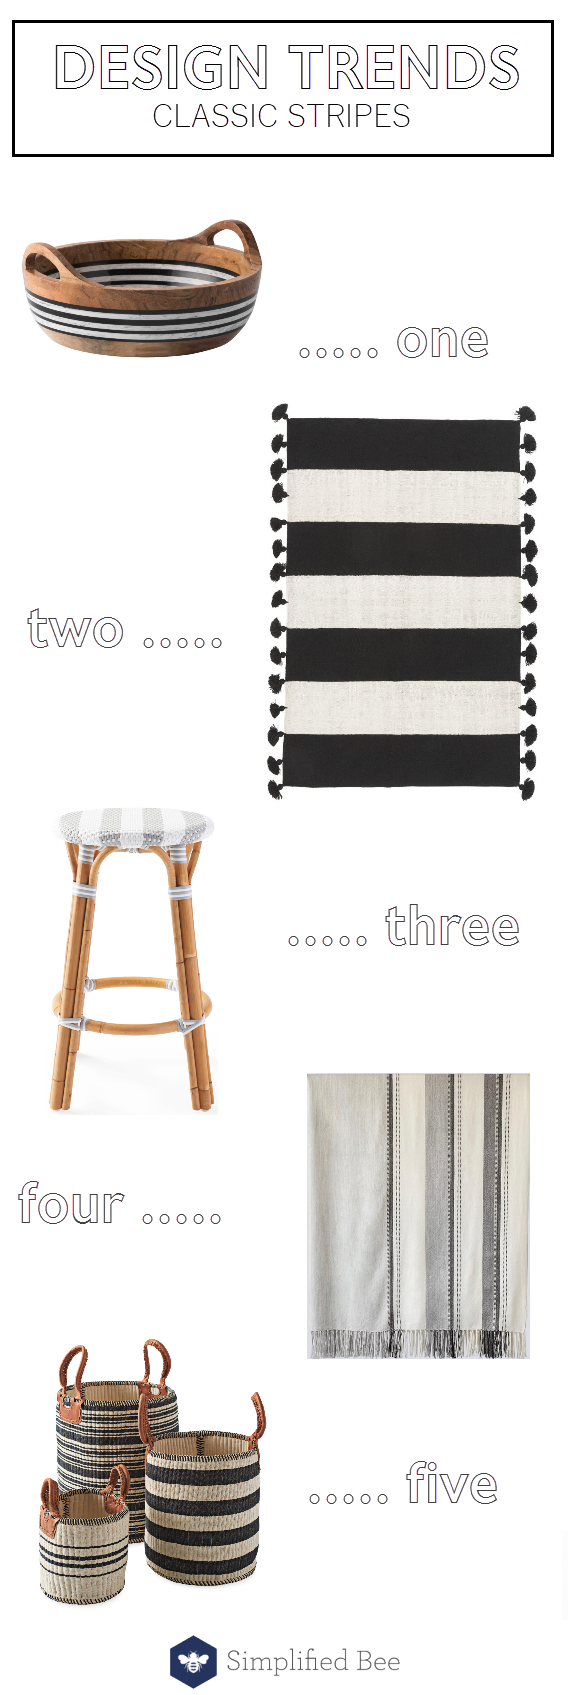 design trends // classic stripe patterns #stripes